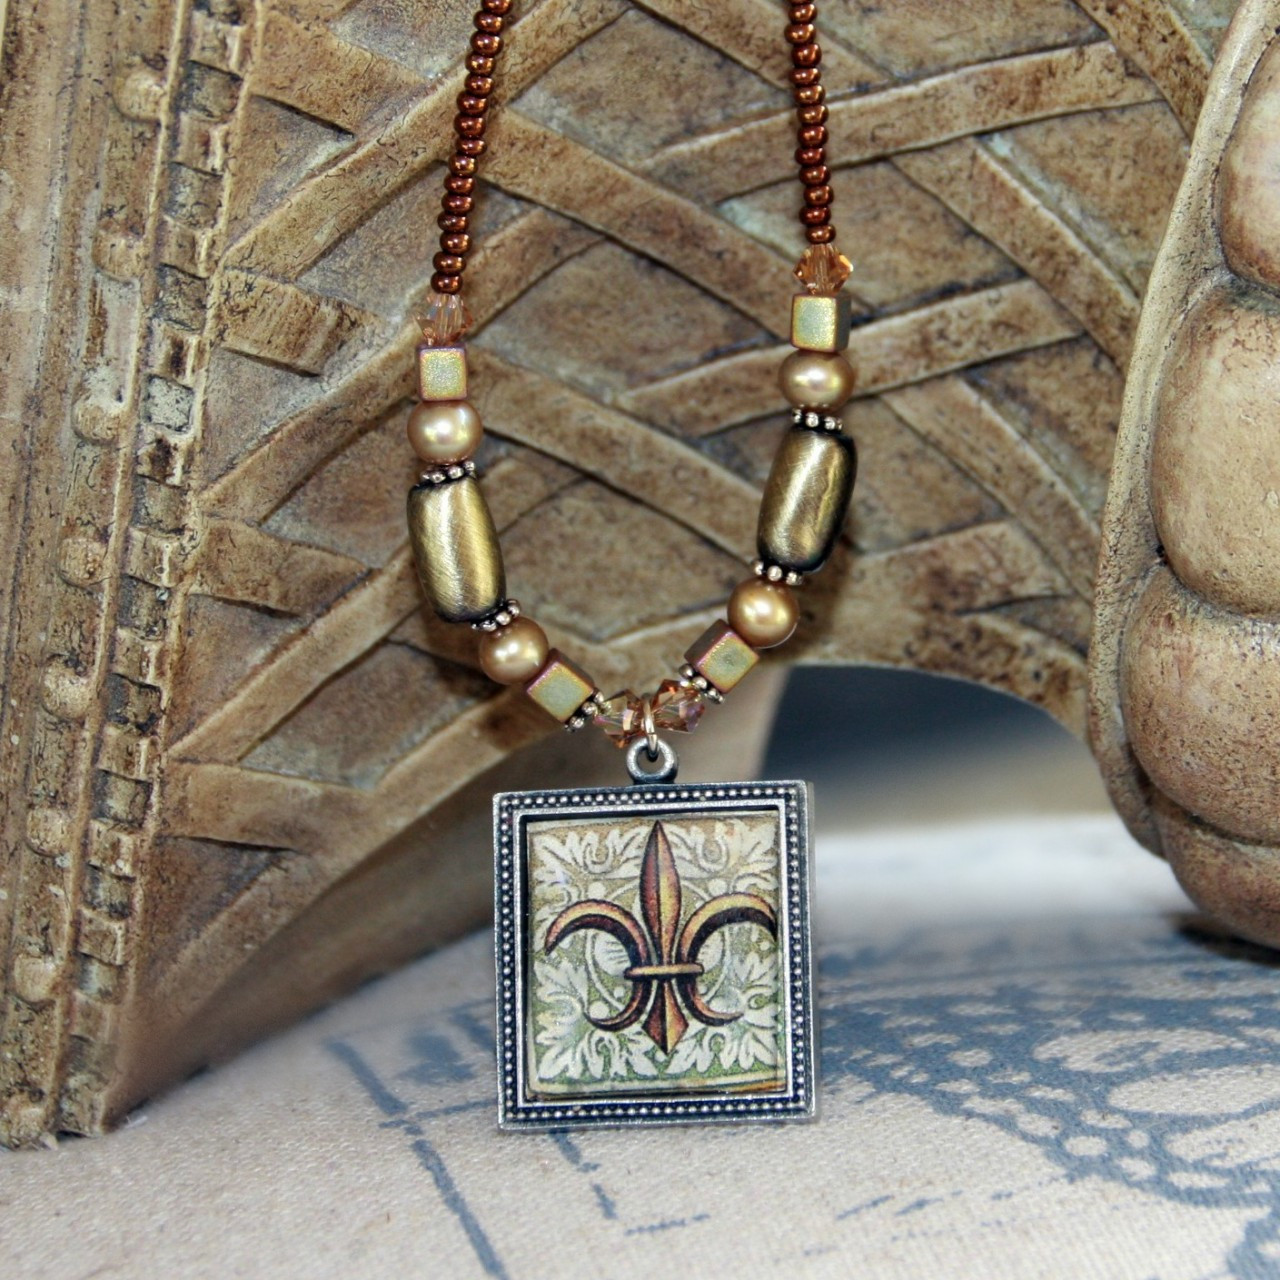 ART-216 Timeless Fleur de Lis ART Collection Necklace